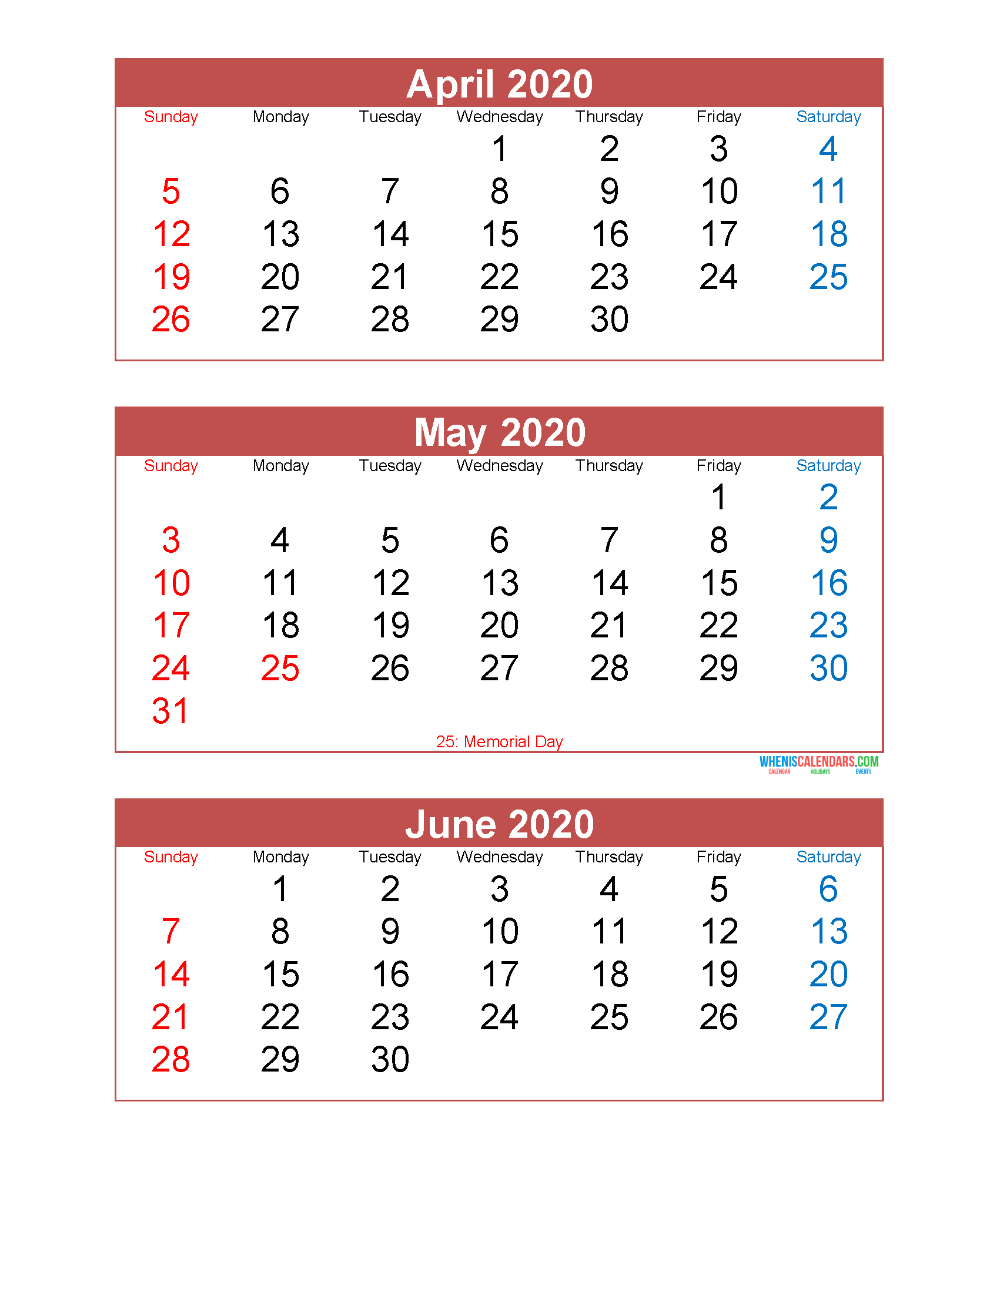 April May June 2020 Calendar 3 Months Per Page Printable intended for Calendar 3 Months Per Page